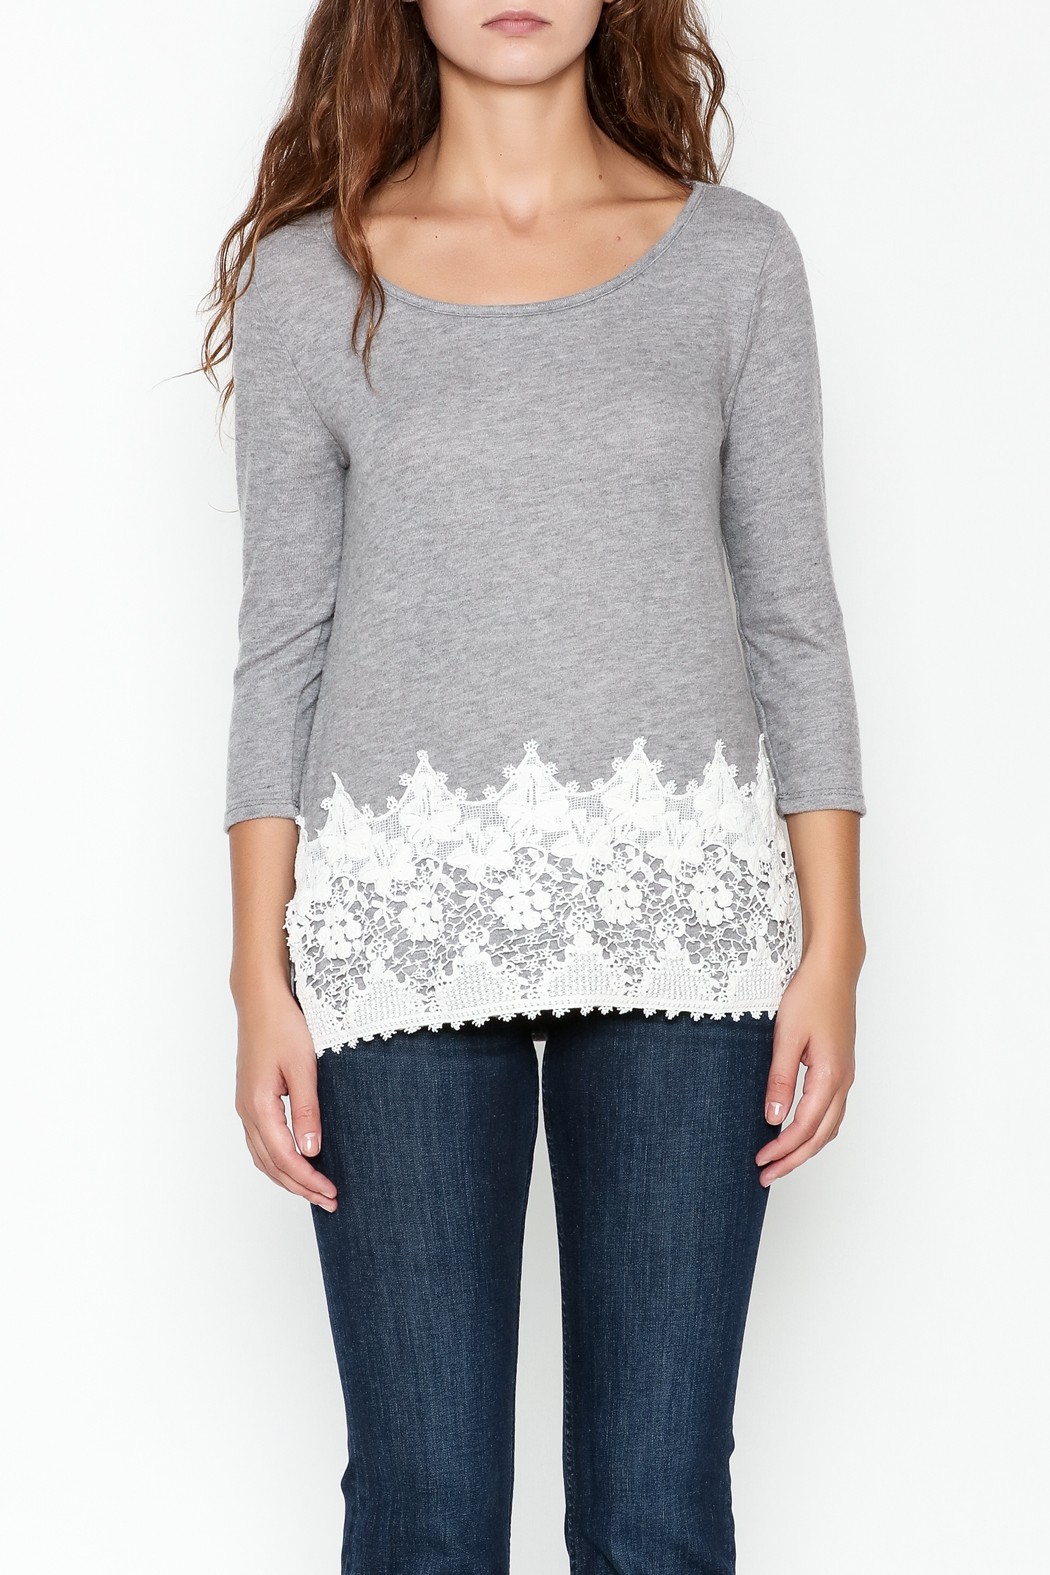 Peach Love California Lucy Lace Knit Top - Front Full Image